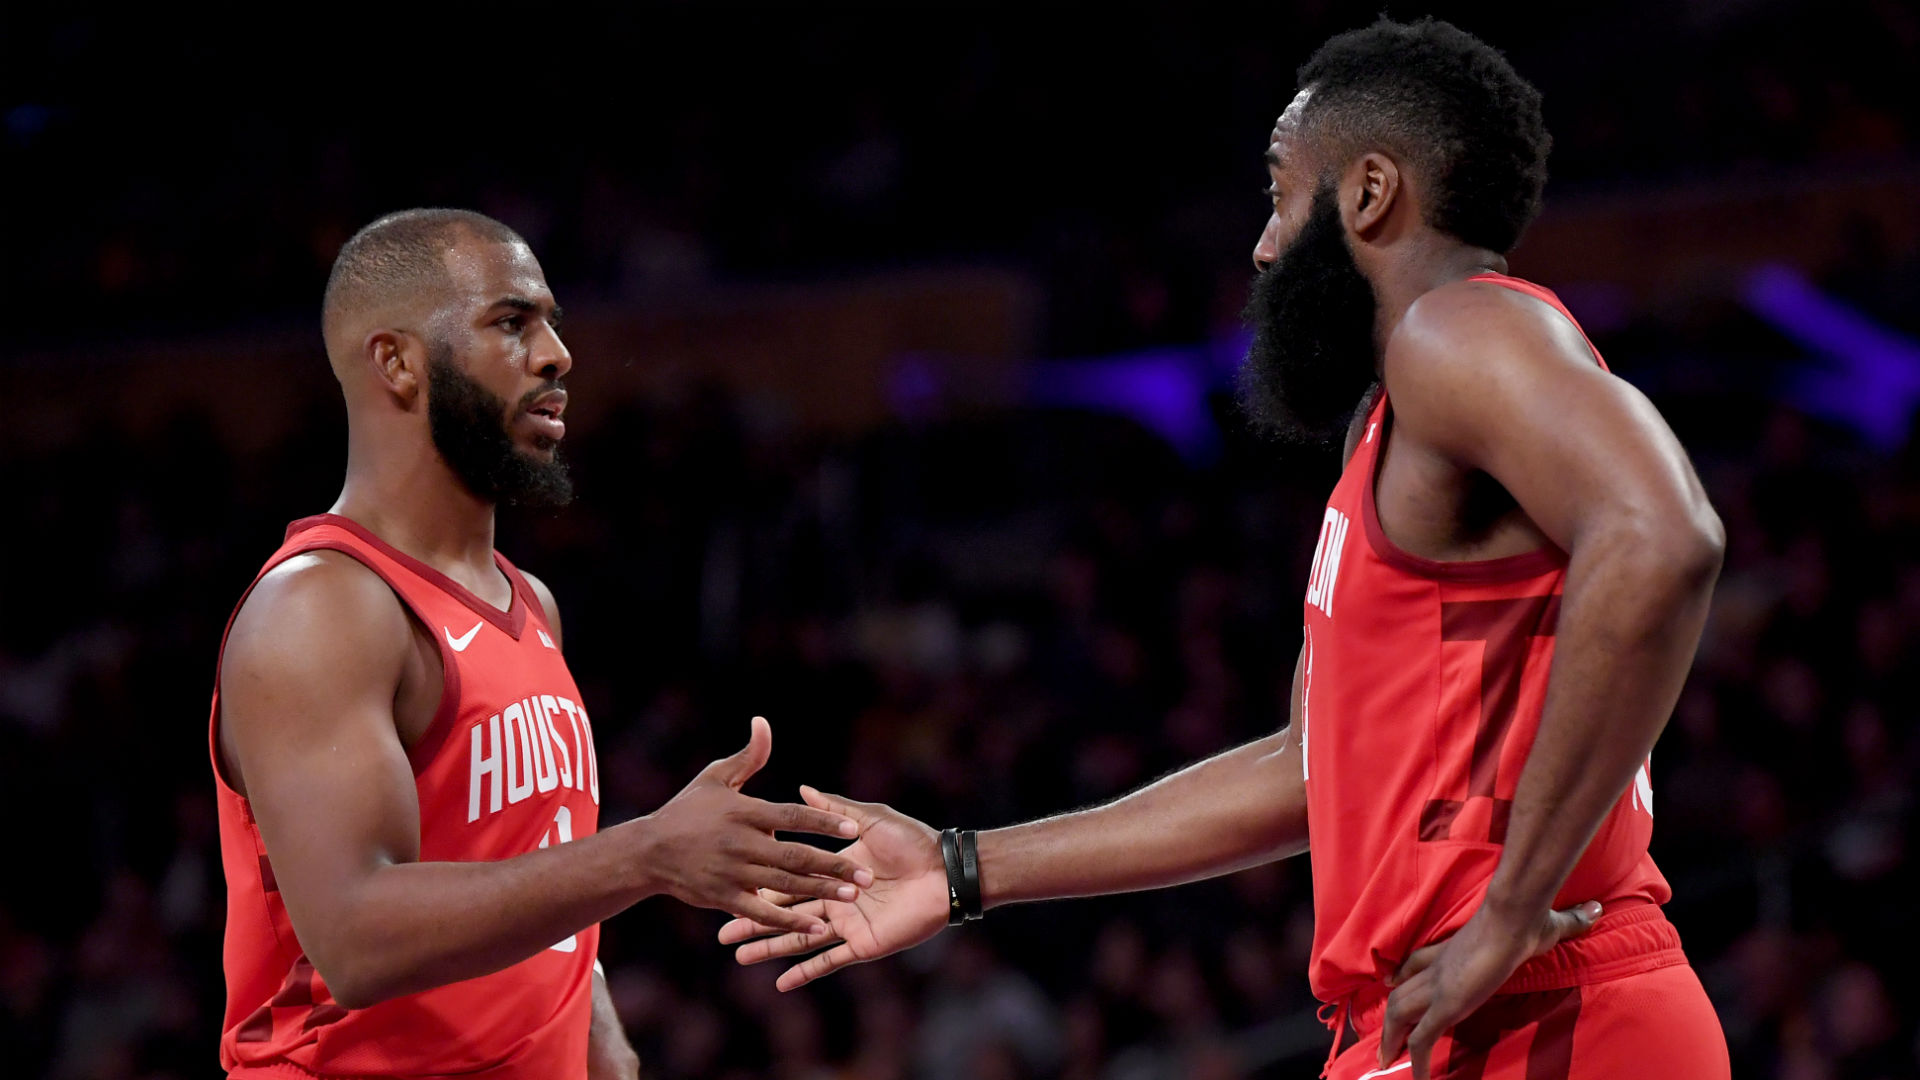 Rockets' James Harden on reported feud with Chris Paul: 'It was a lot of false talk'